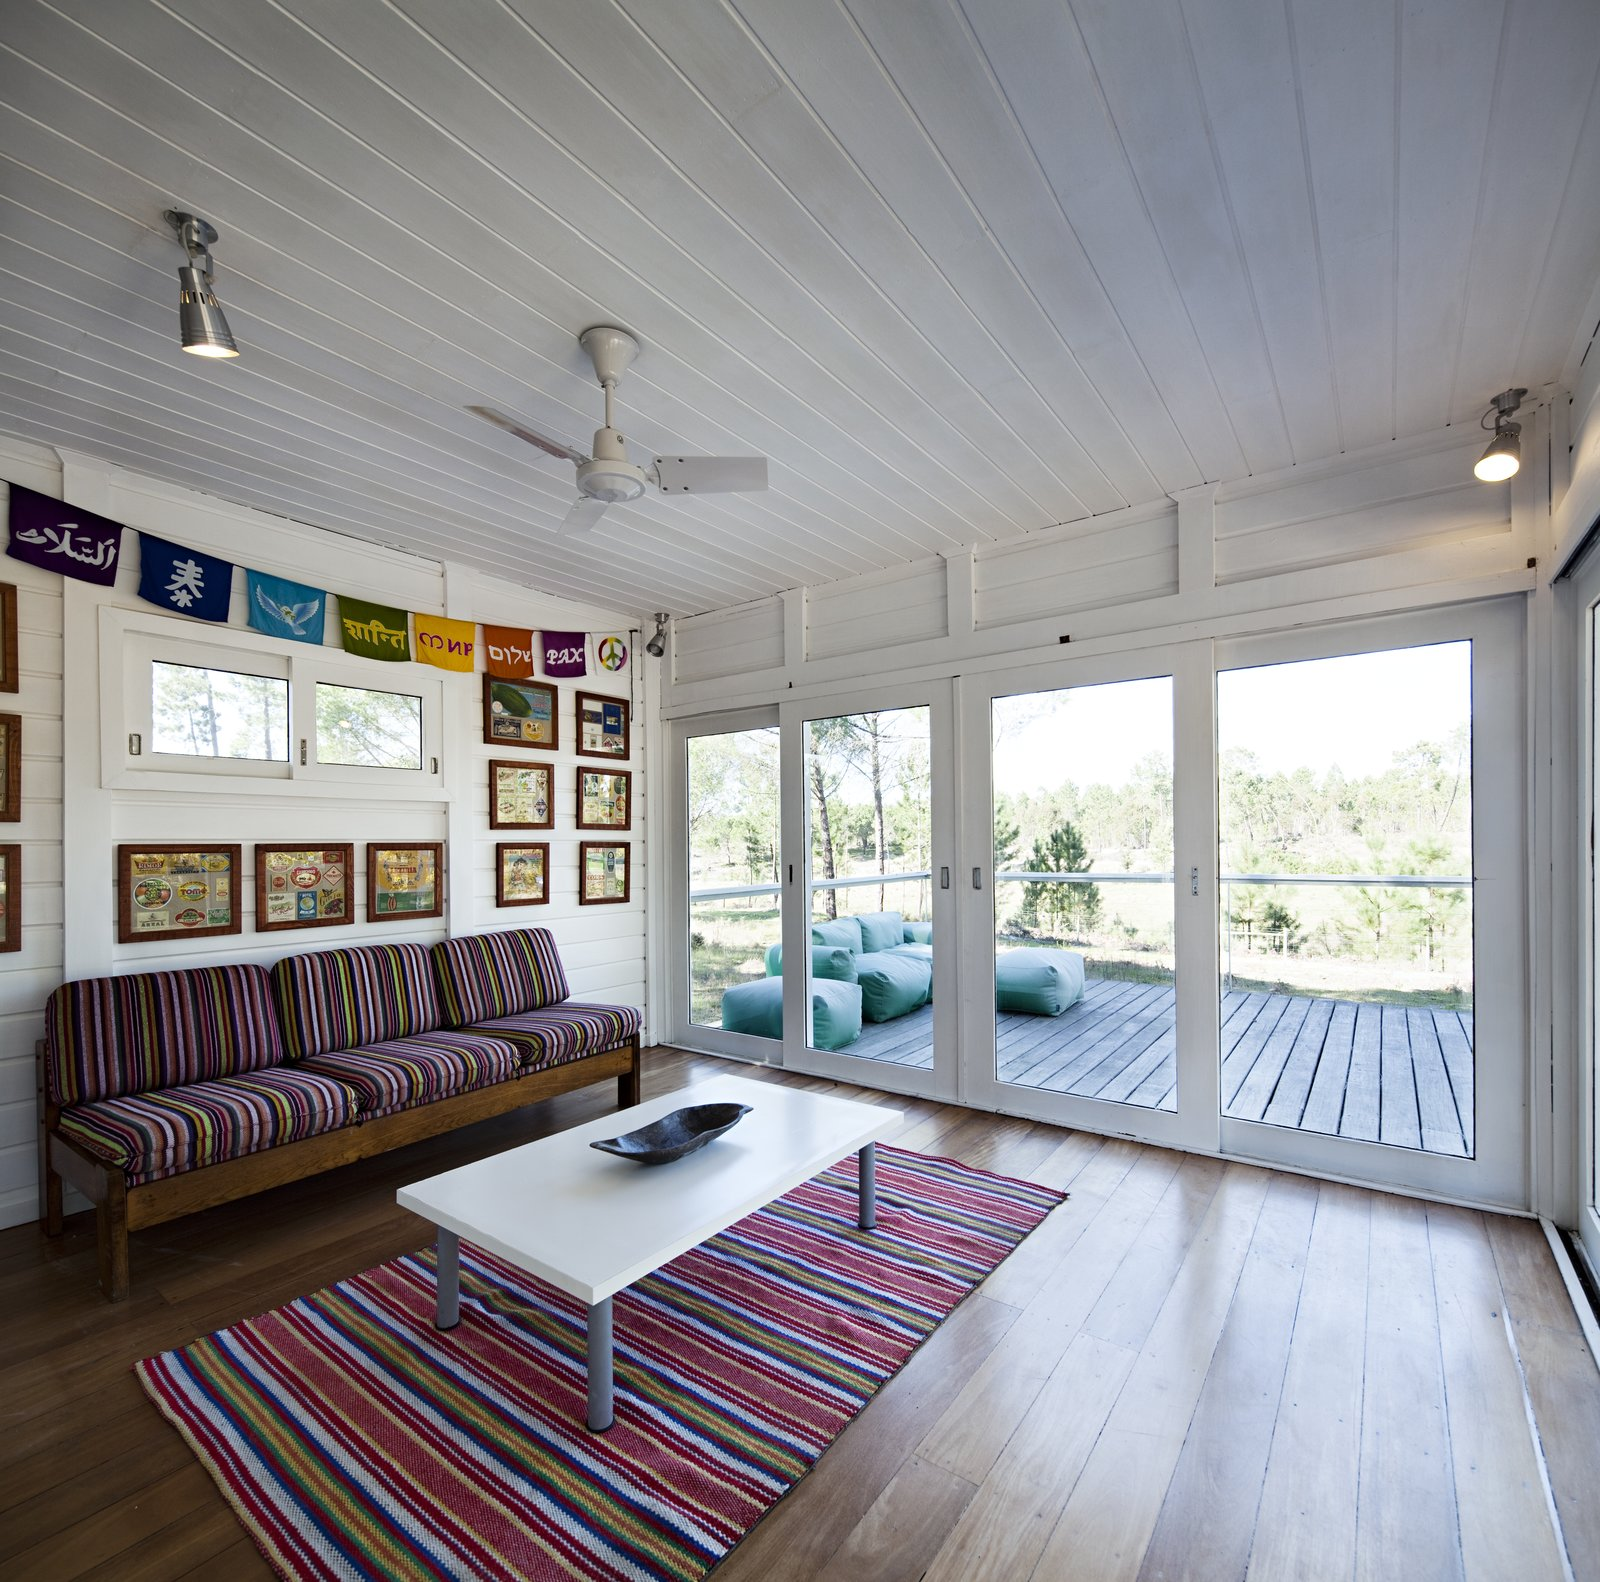 Tagged: Living Room, Sofa, Coffee Tables, Ceiling Lighting, Medium Hardwood Floor, and Rug Floor.  Photo 9 of 15 in Escape to a Light-Filled, Beach-Meets-Forest Retreat in Portugal